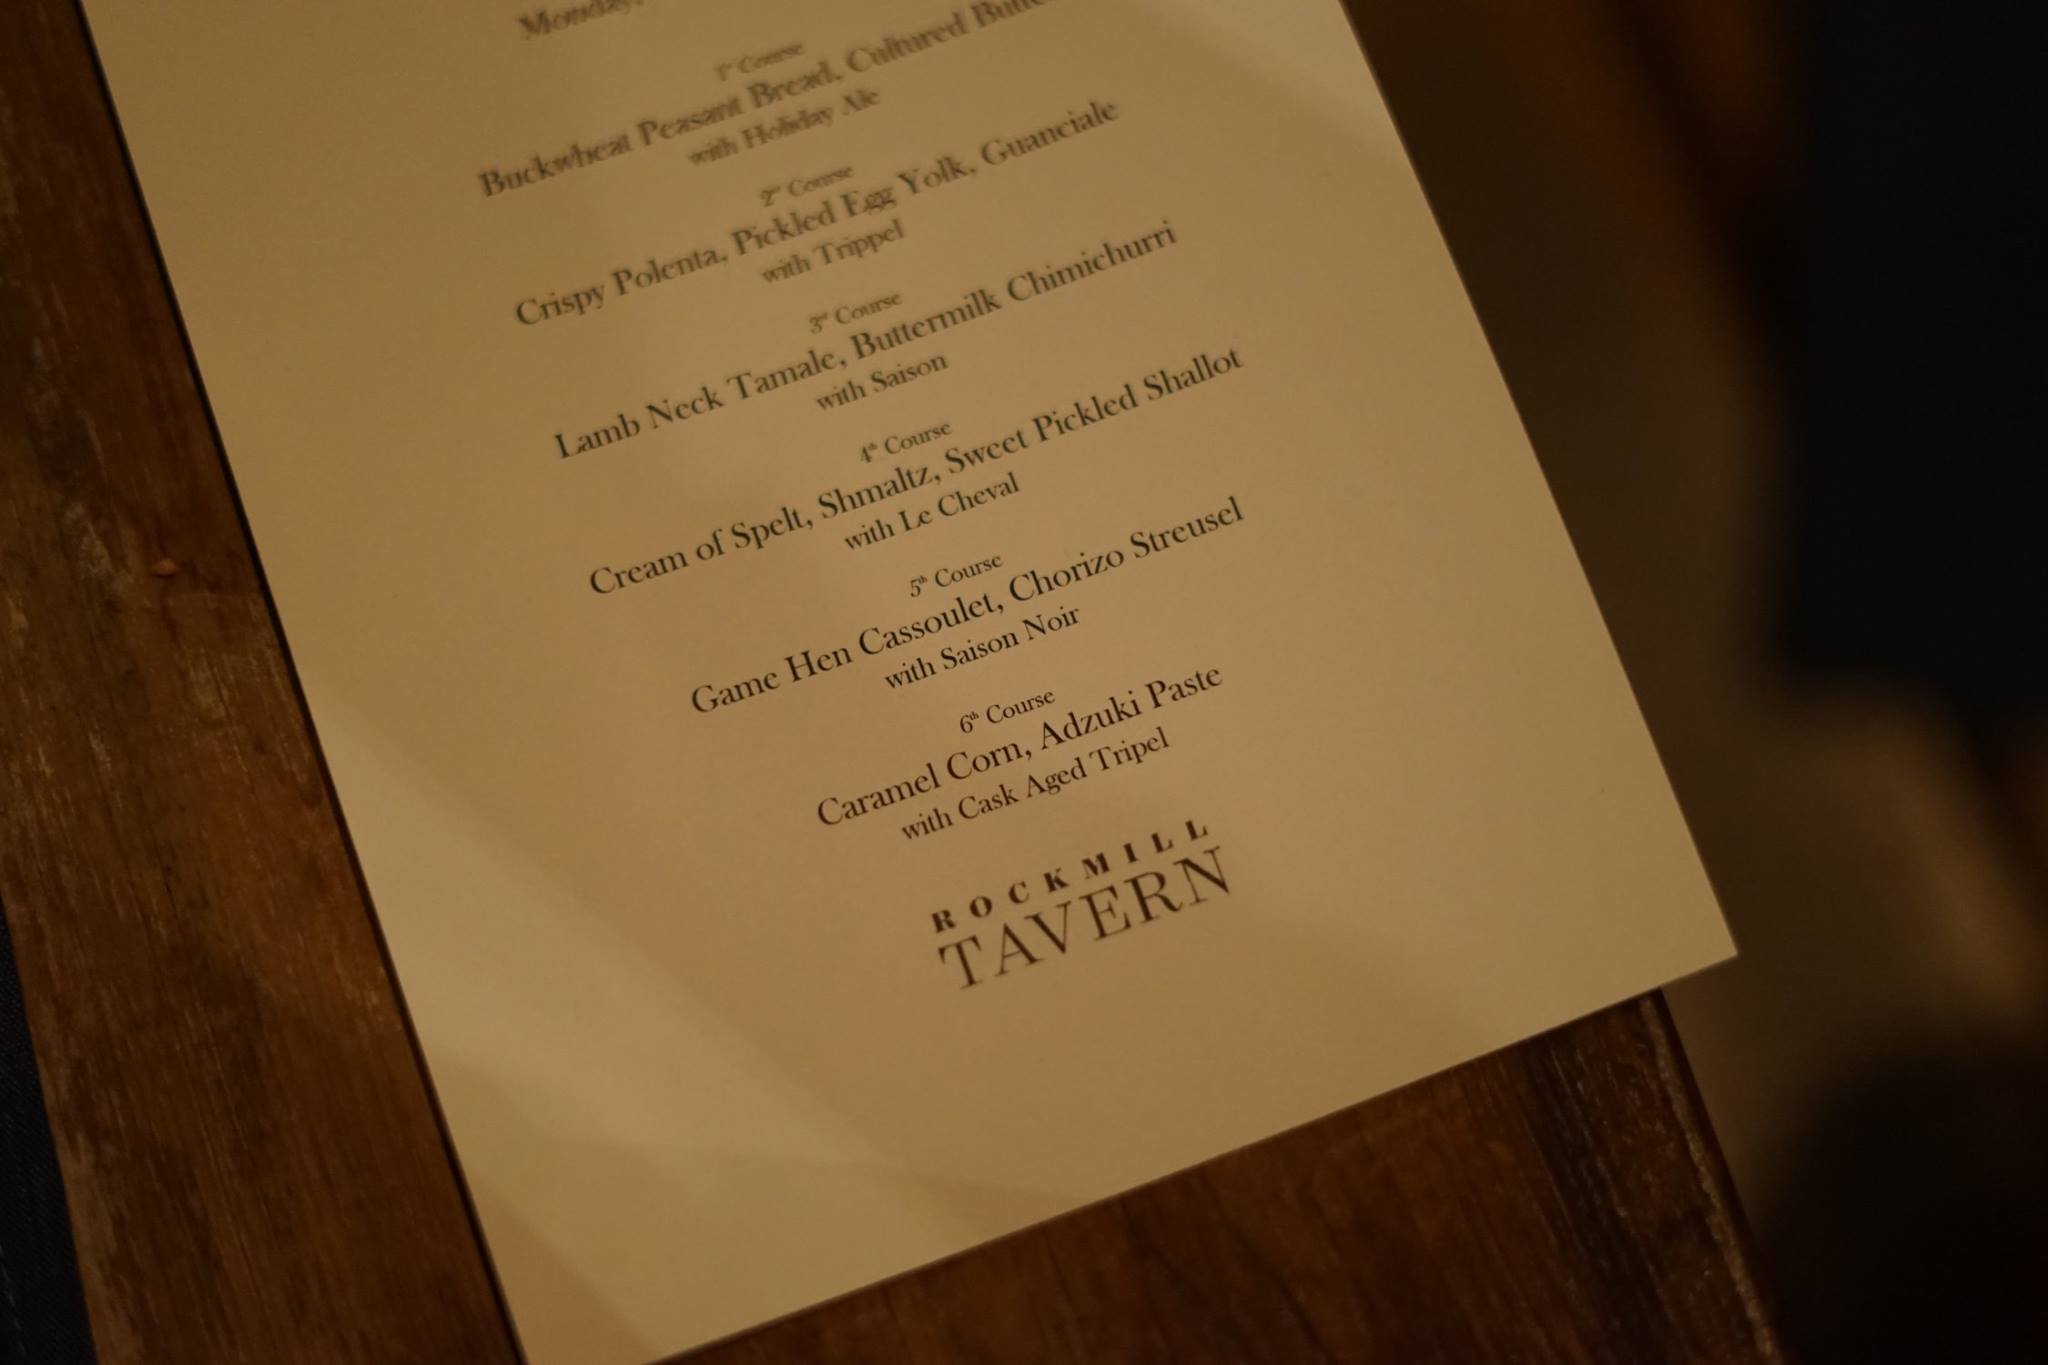 Snailblazer Award dinner menu